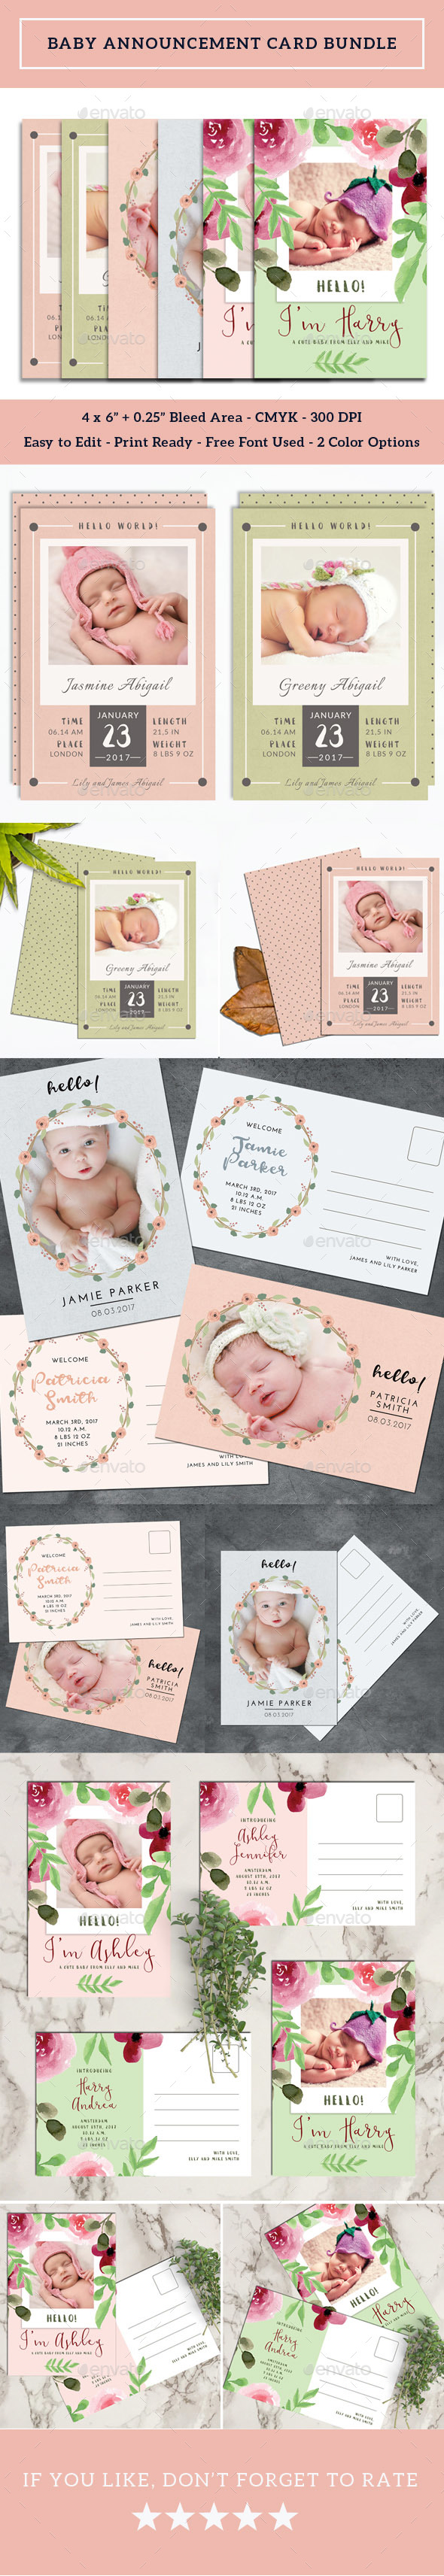 Baby Announcement Card Bundle - Cards & Invites Print Templates